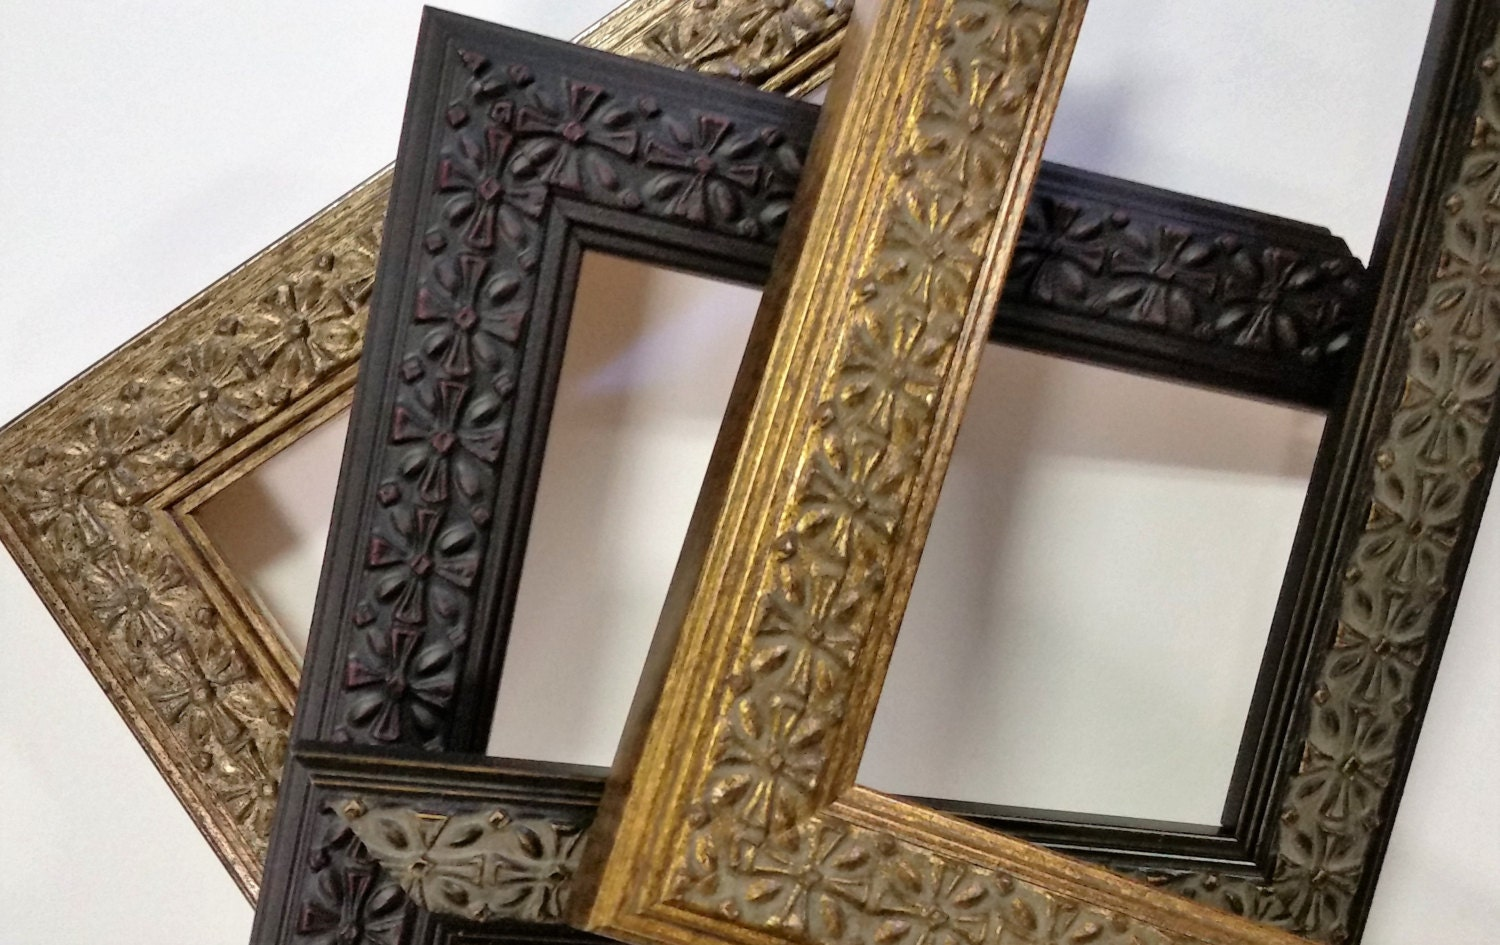 14 x 18 20 x 24 wood picture frames ornate vintage sold by dreesefineart jeuxipadfo Image collections